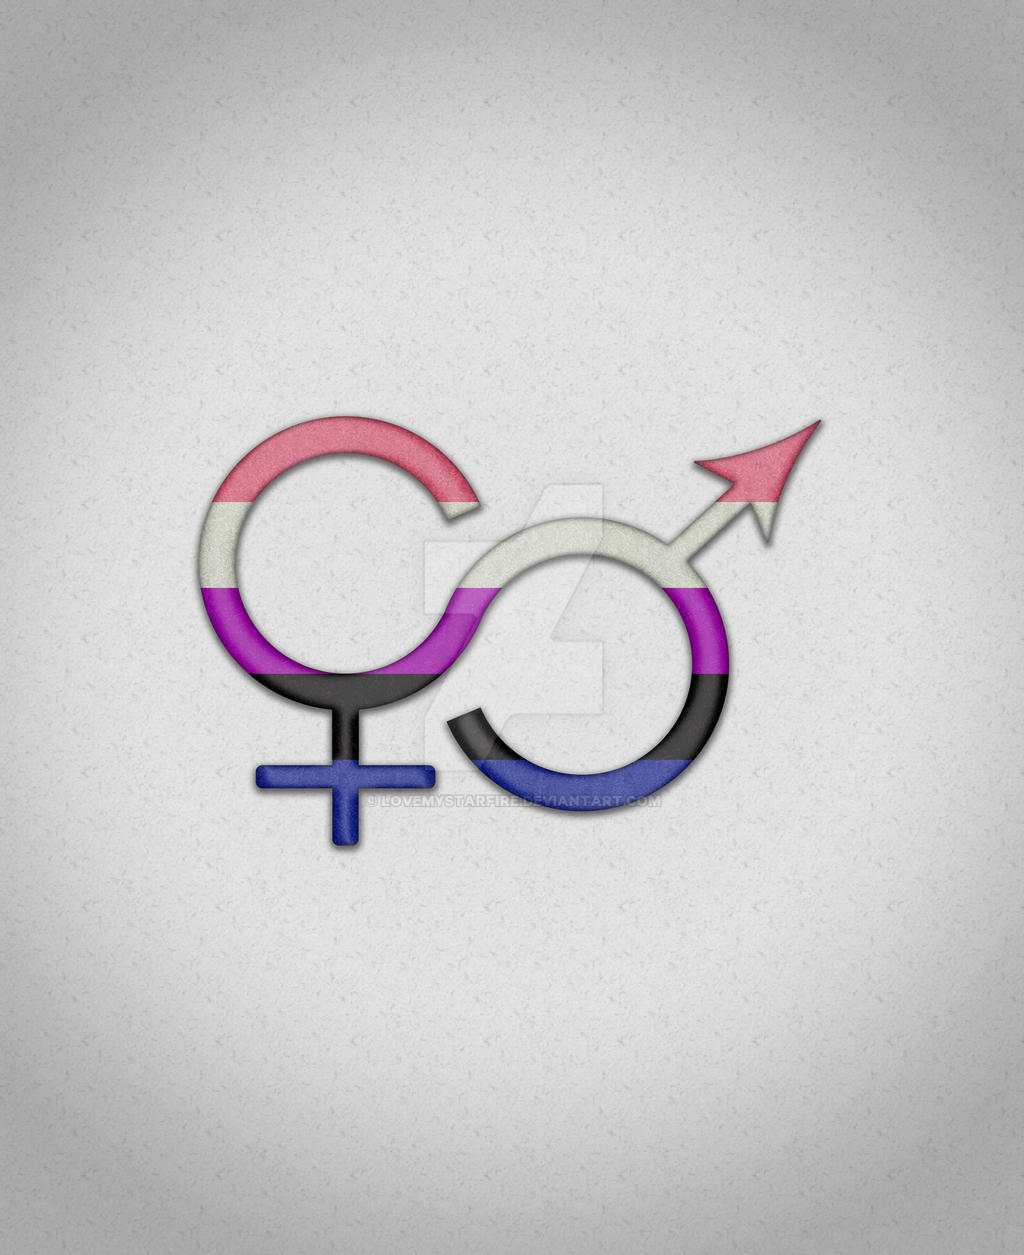 genderfluid symbol by lovemystarfire on deviantart